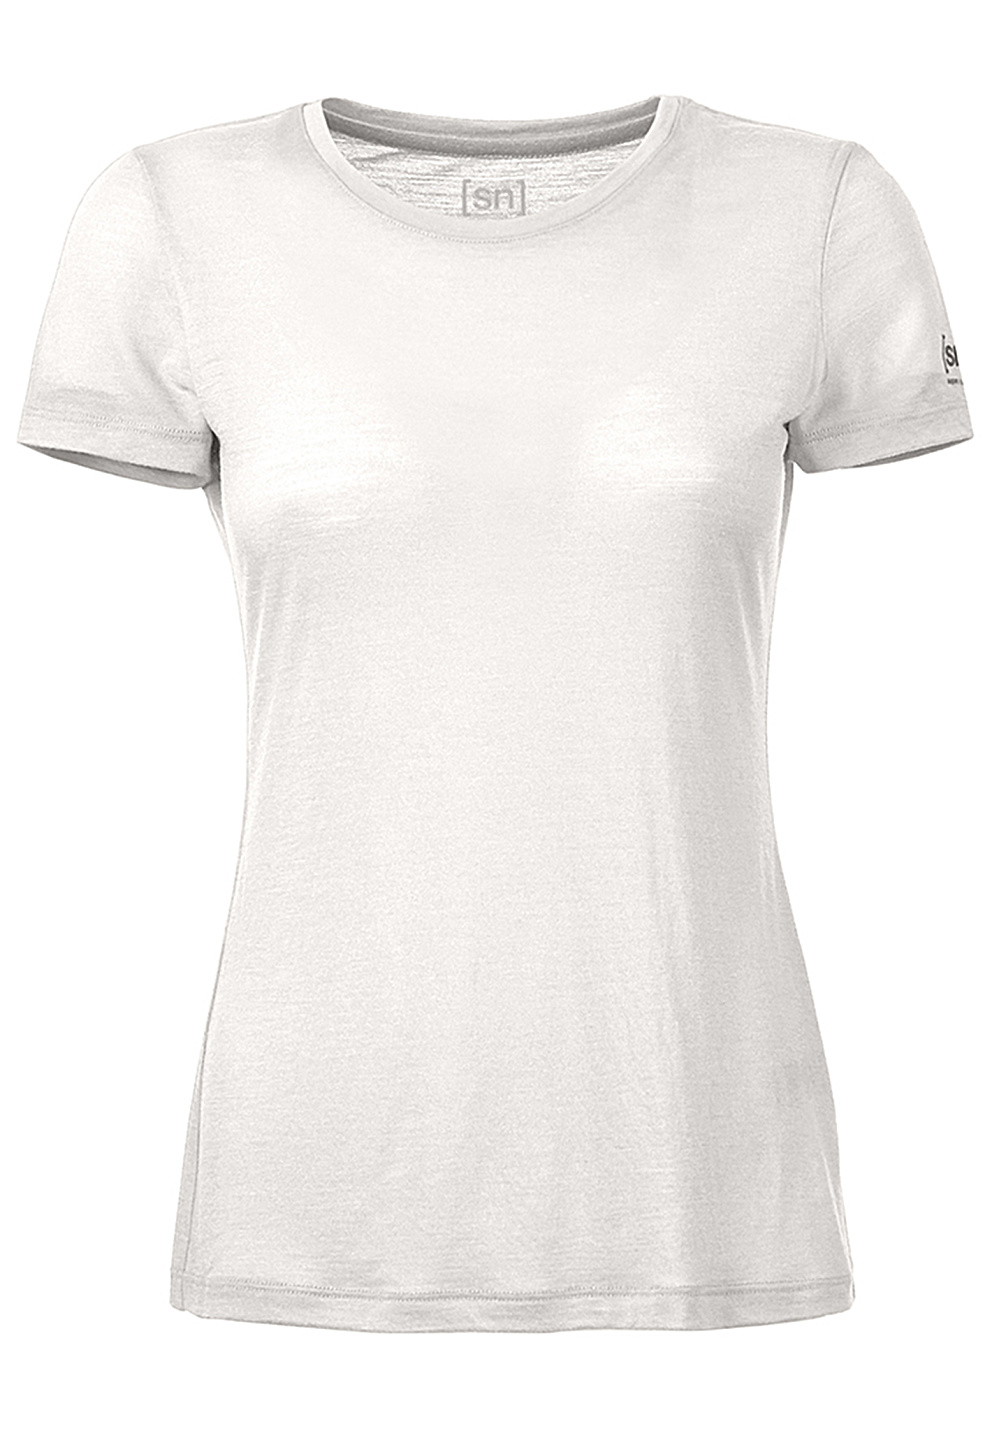 Super.natural Base 140 - T-Shirt für Damen - Weiß - L